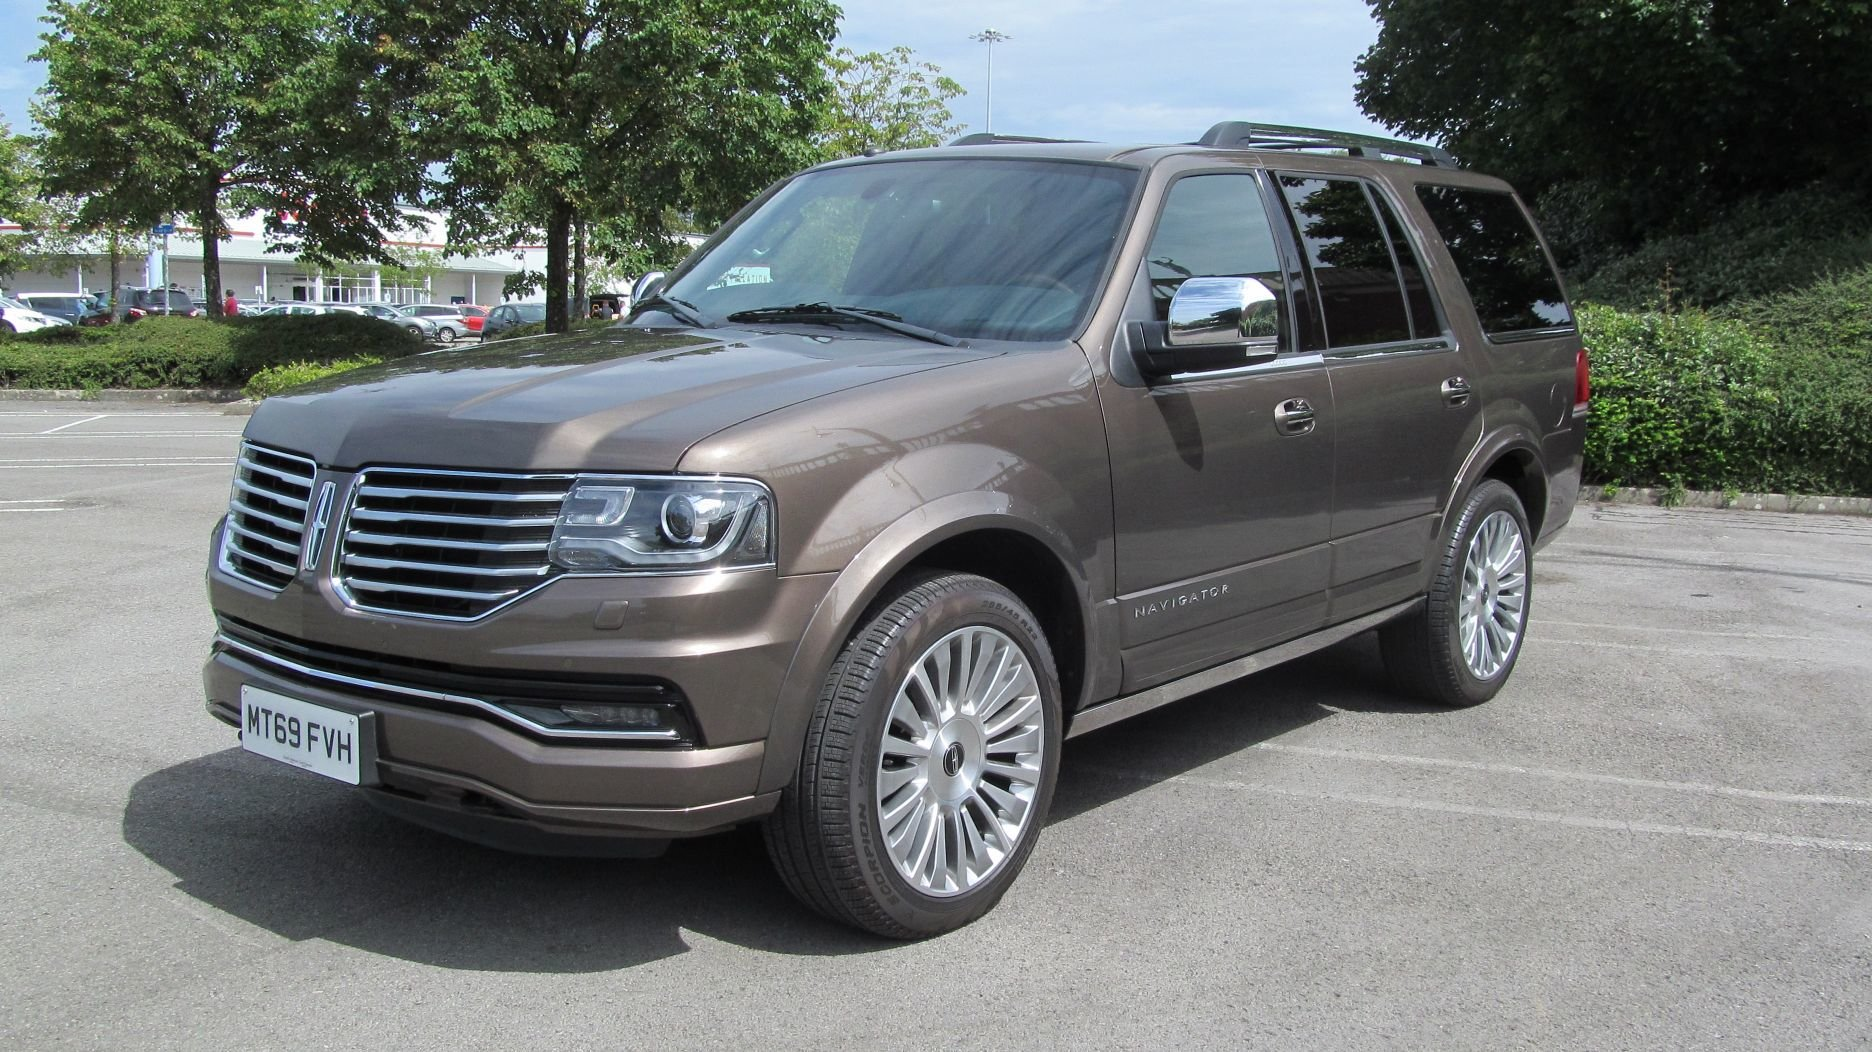 2017 Now Reduced 69 reg Lincoln Navigator Reserve 3.5L V6 4X4 SOLD (picture 1 of 6)